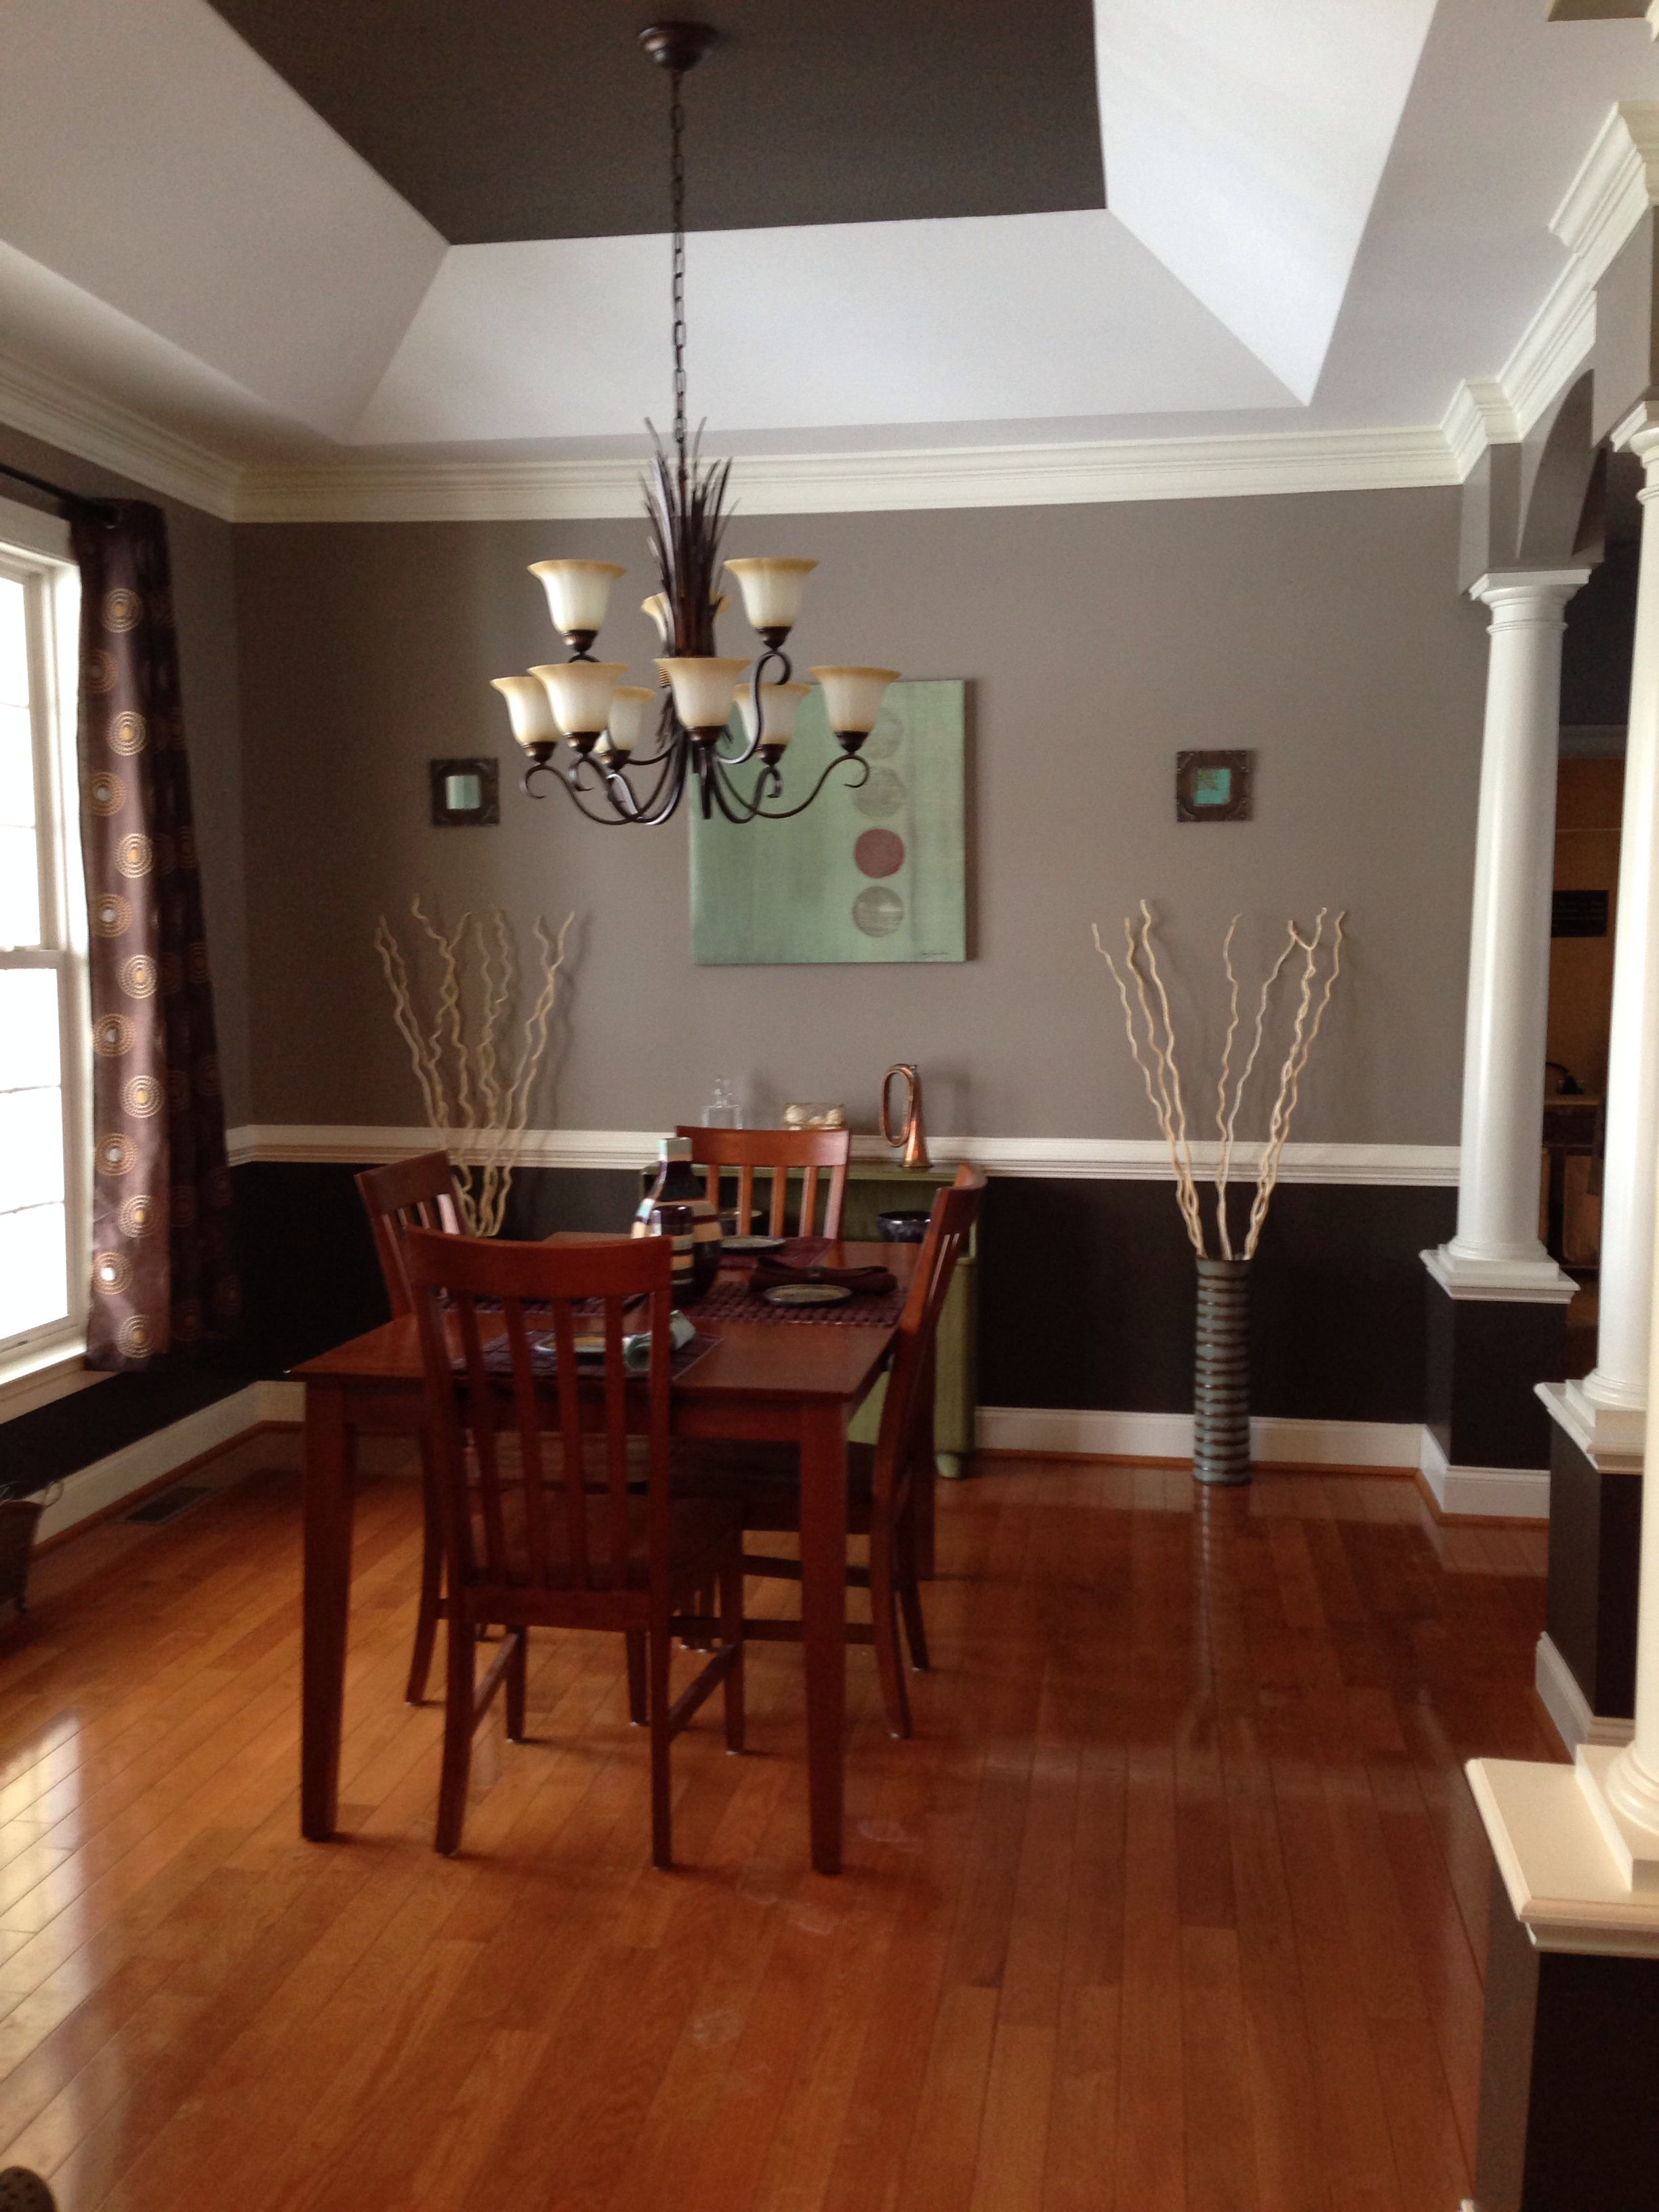 Our Dining Room Color Valspar Coastal Villa On Top Italian Leather Under Rail And Ceiling